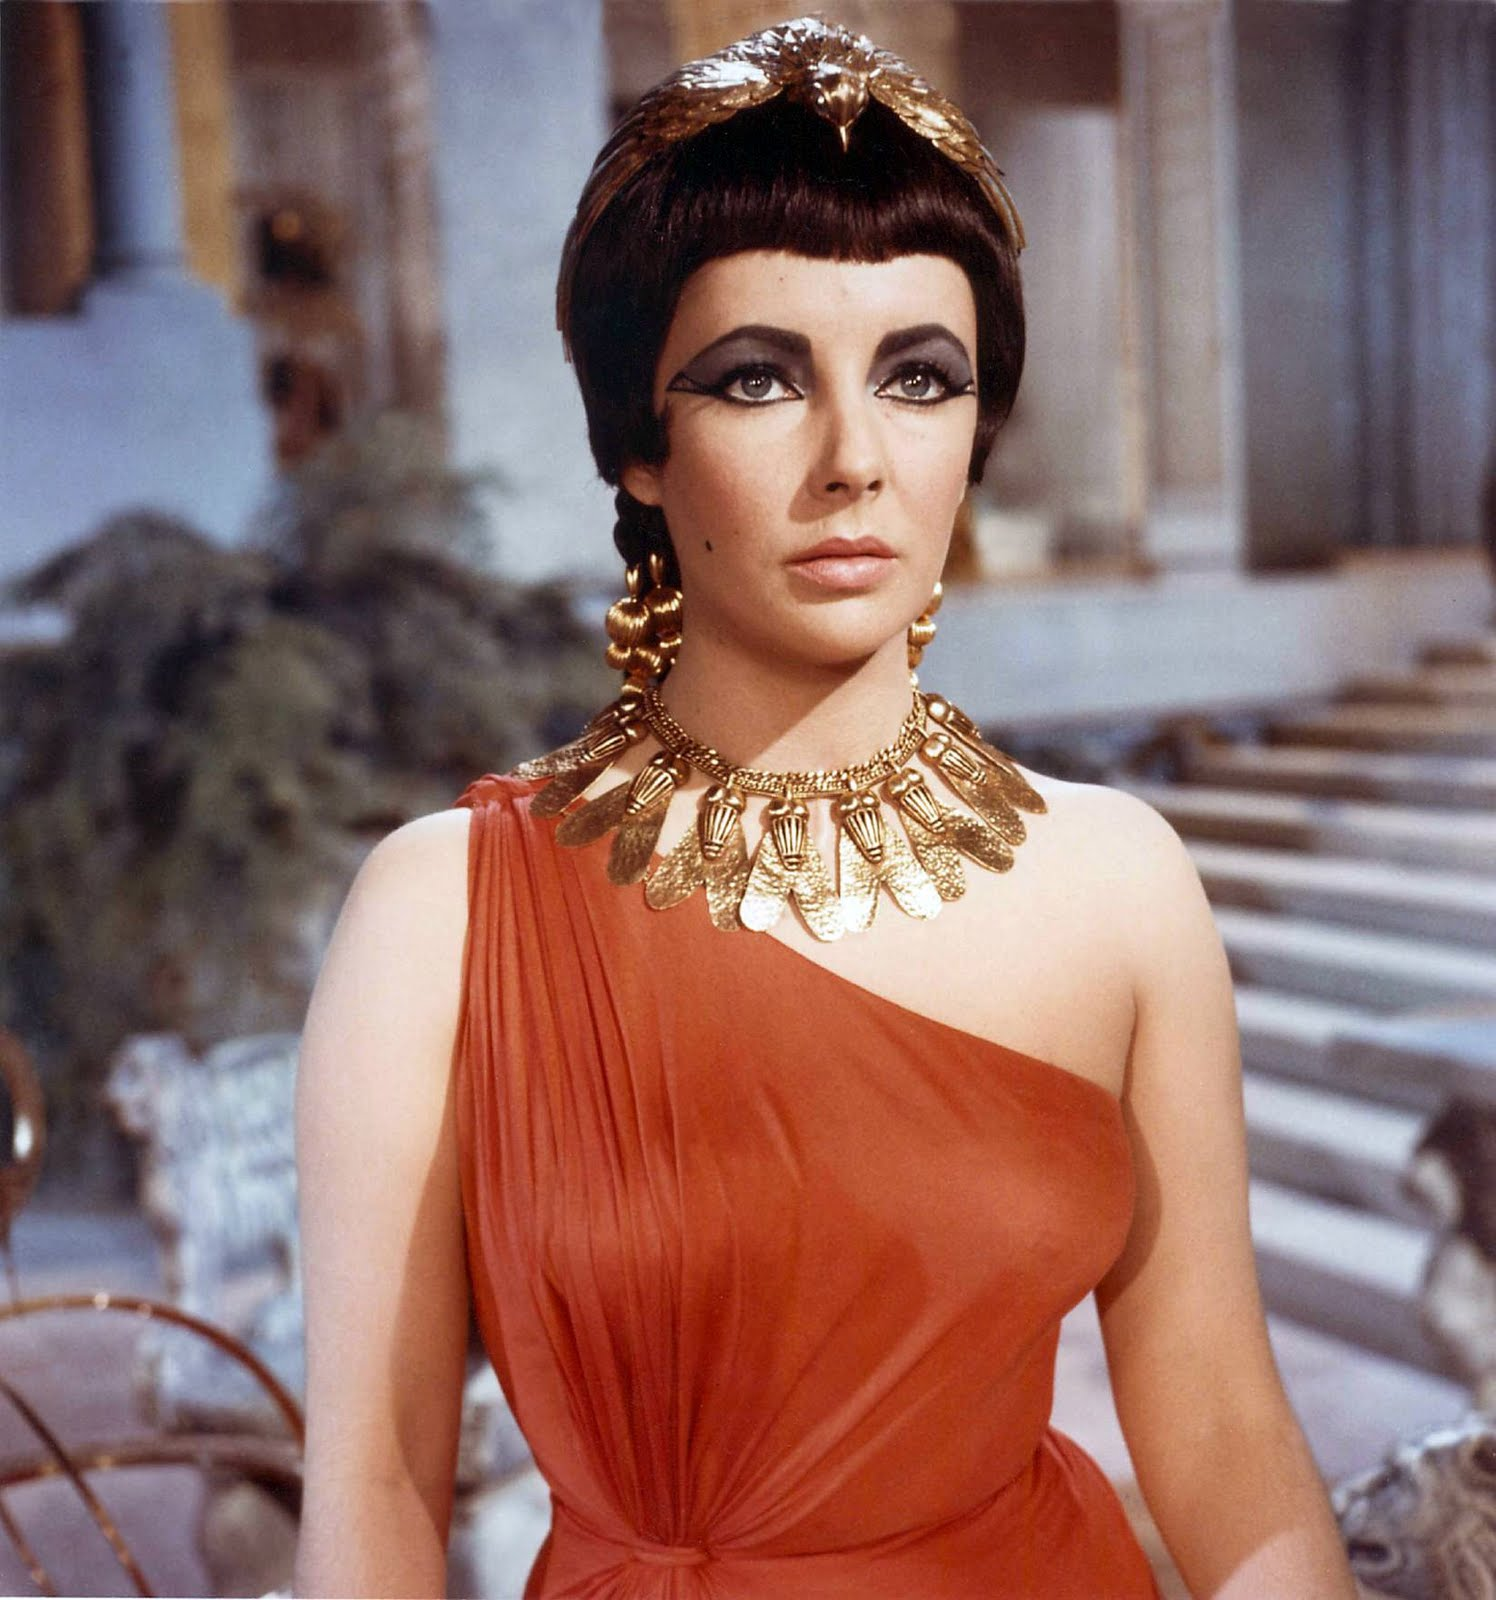 D Queen Elizabeth Taylor As Cleopatra In Rust Colored Jersey And Blue Key Hole Neckline Dresses Designed By Costume Designer Irene Sharaff